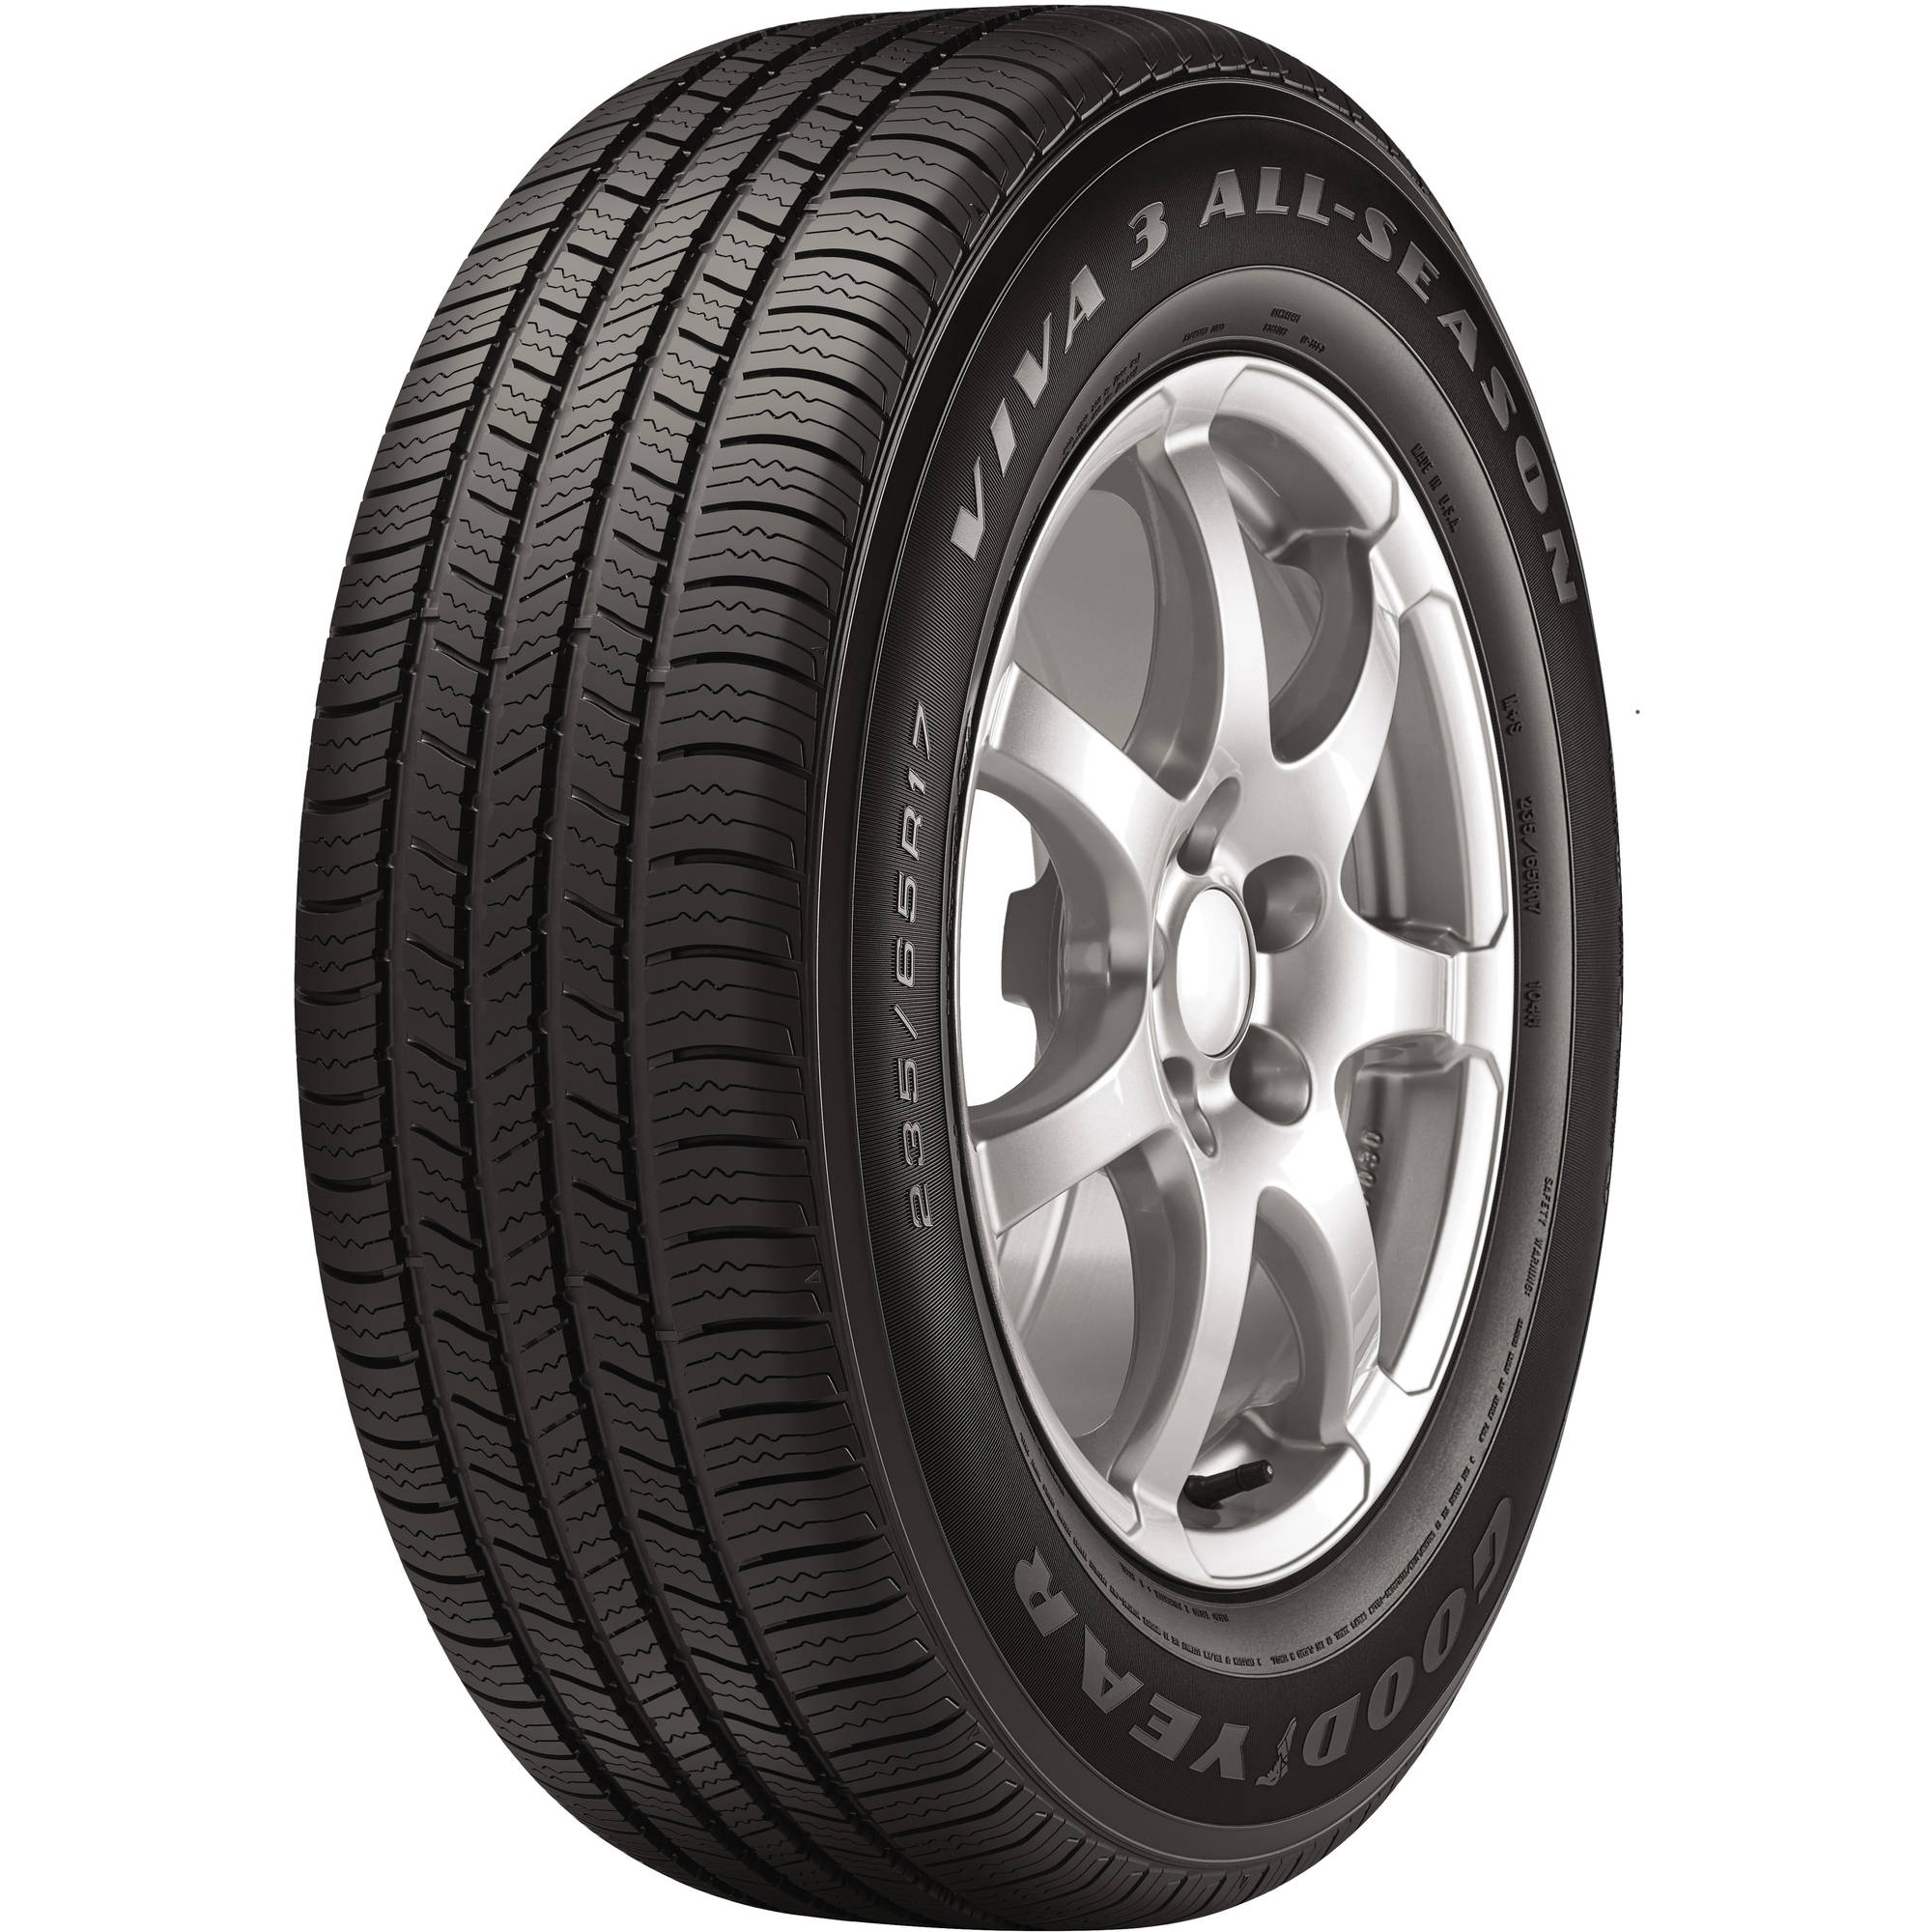 Goodyear Viva 3 All-Season Tire 225/60R17 99H